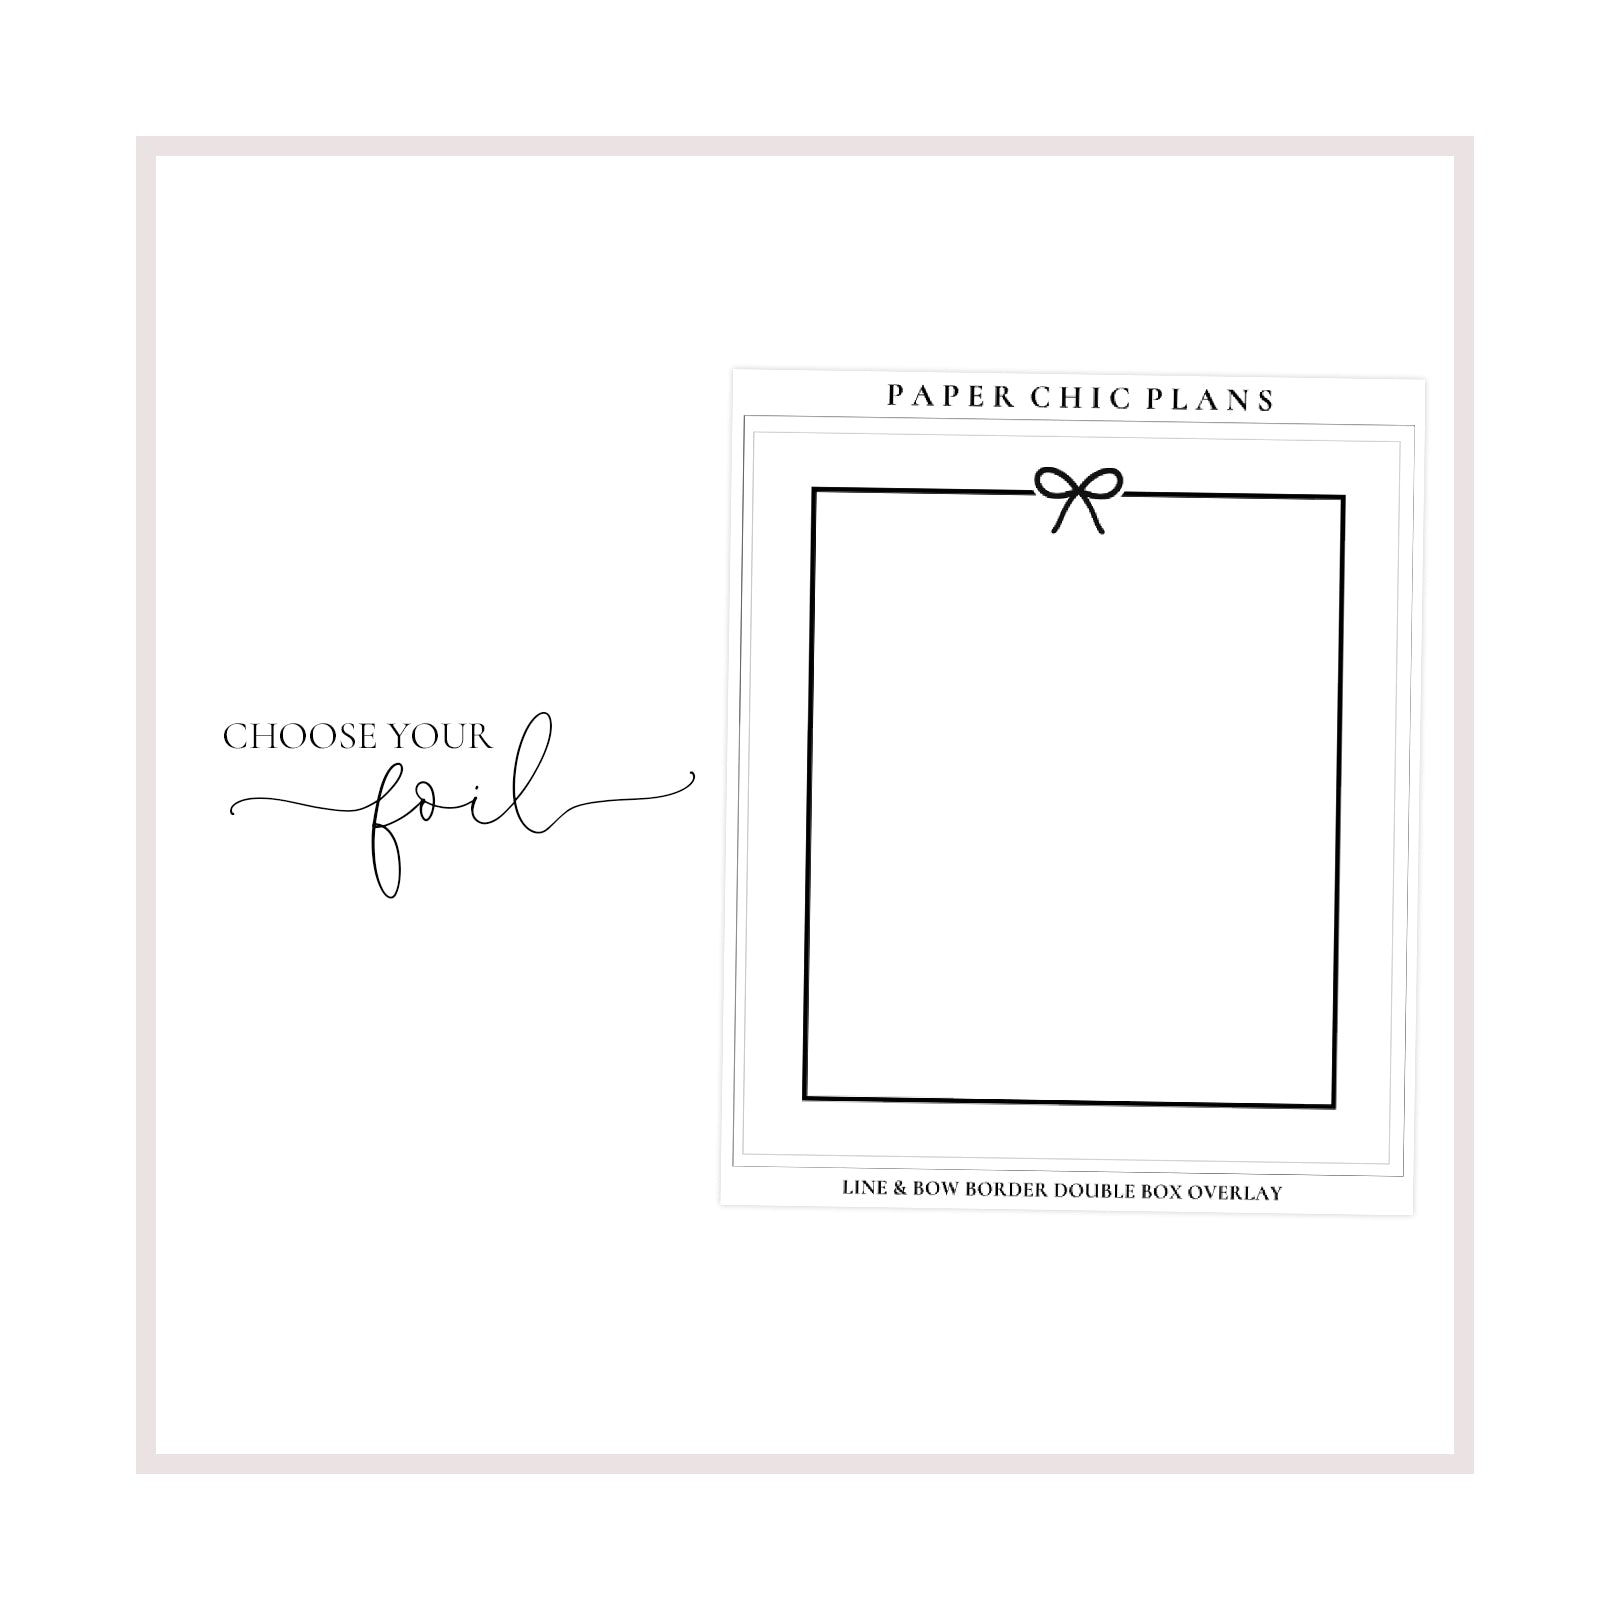 Line & Bow Border Double Box Overlay // Foiled - Paper Chic Plans